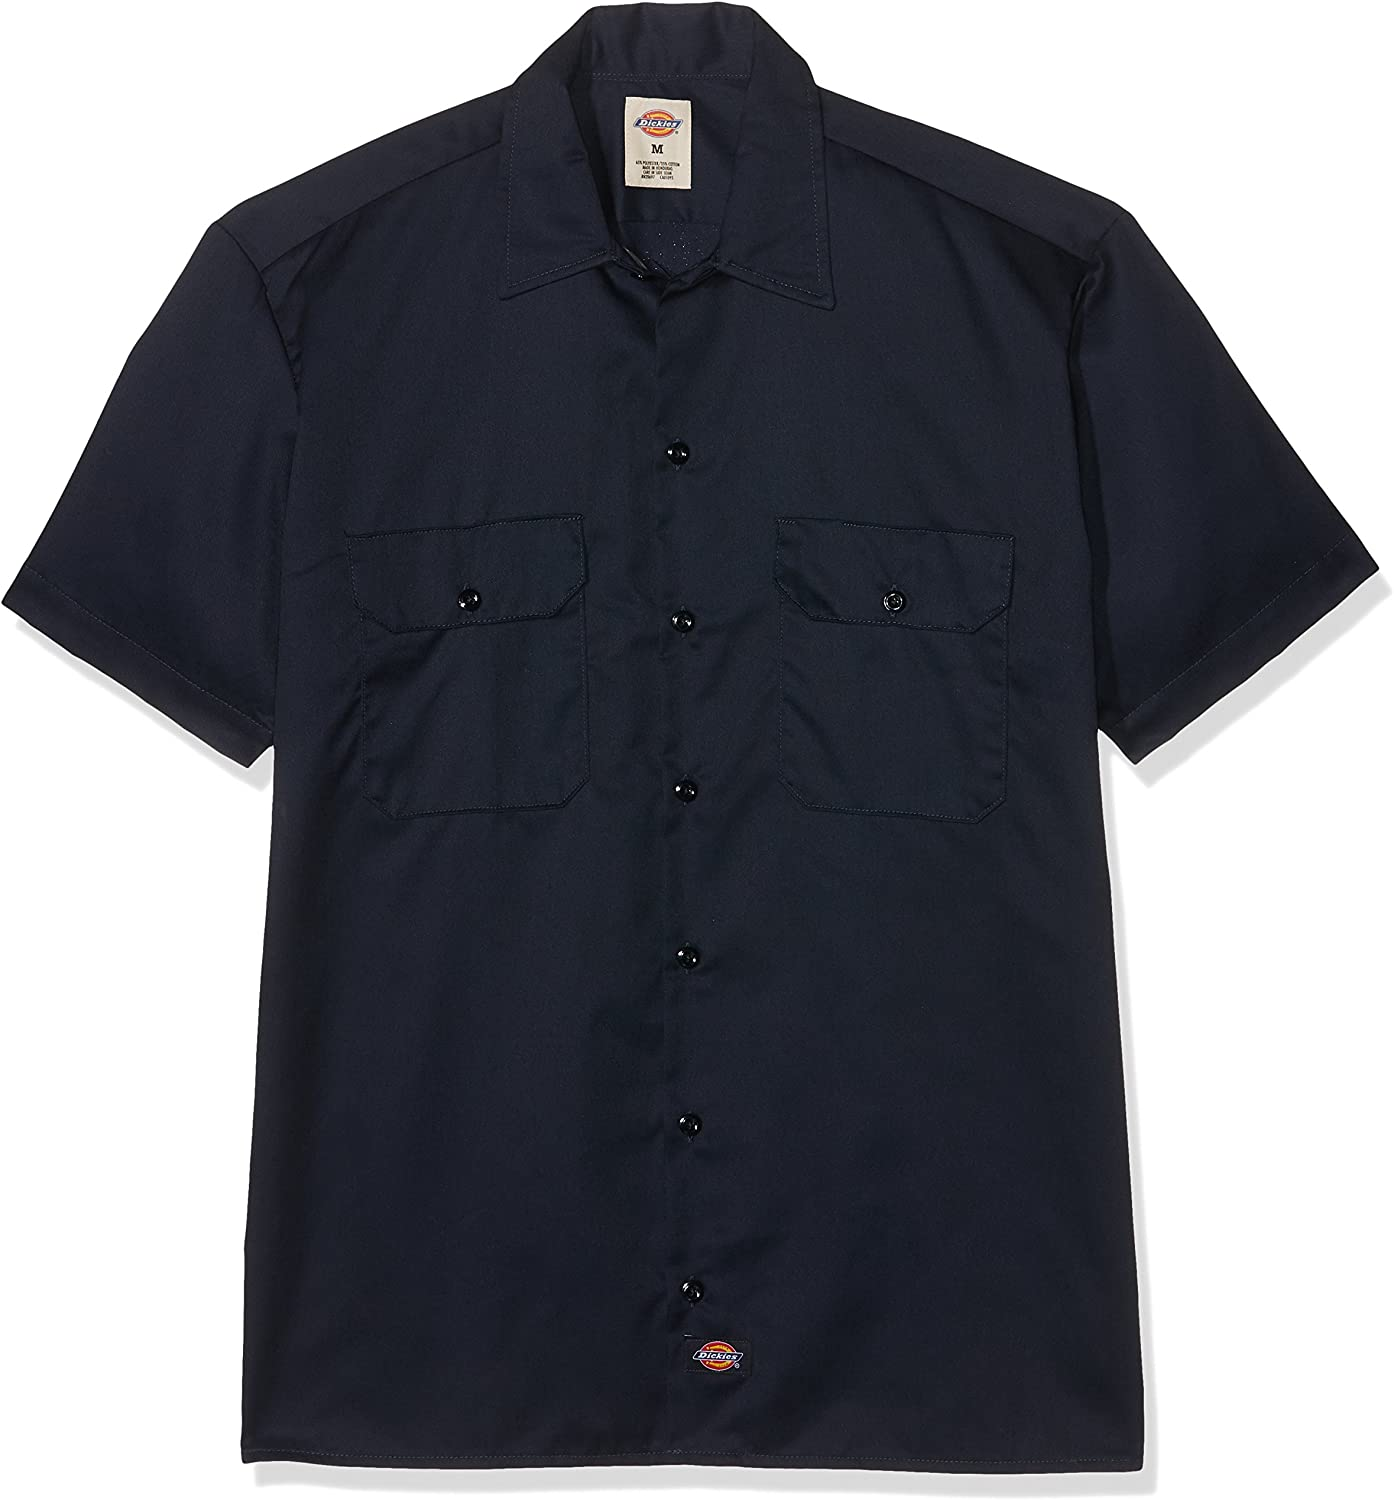 Dickies Men's Big and Tall Short-Sleeve Work Shirt: Clothing